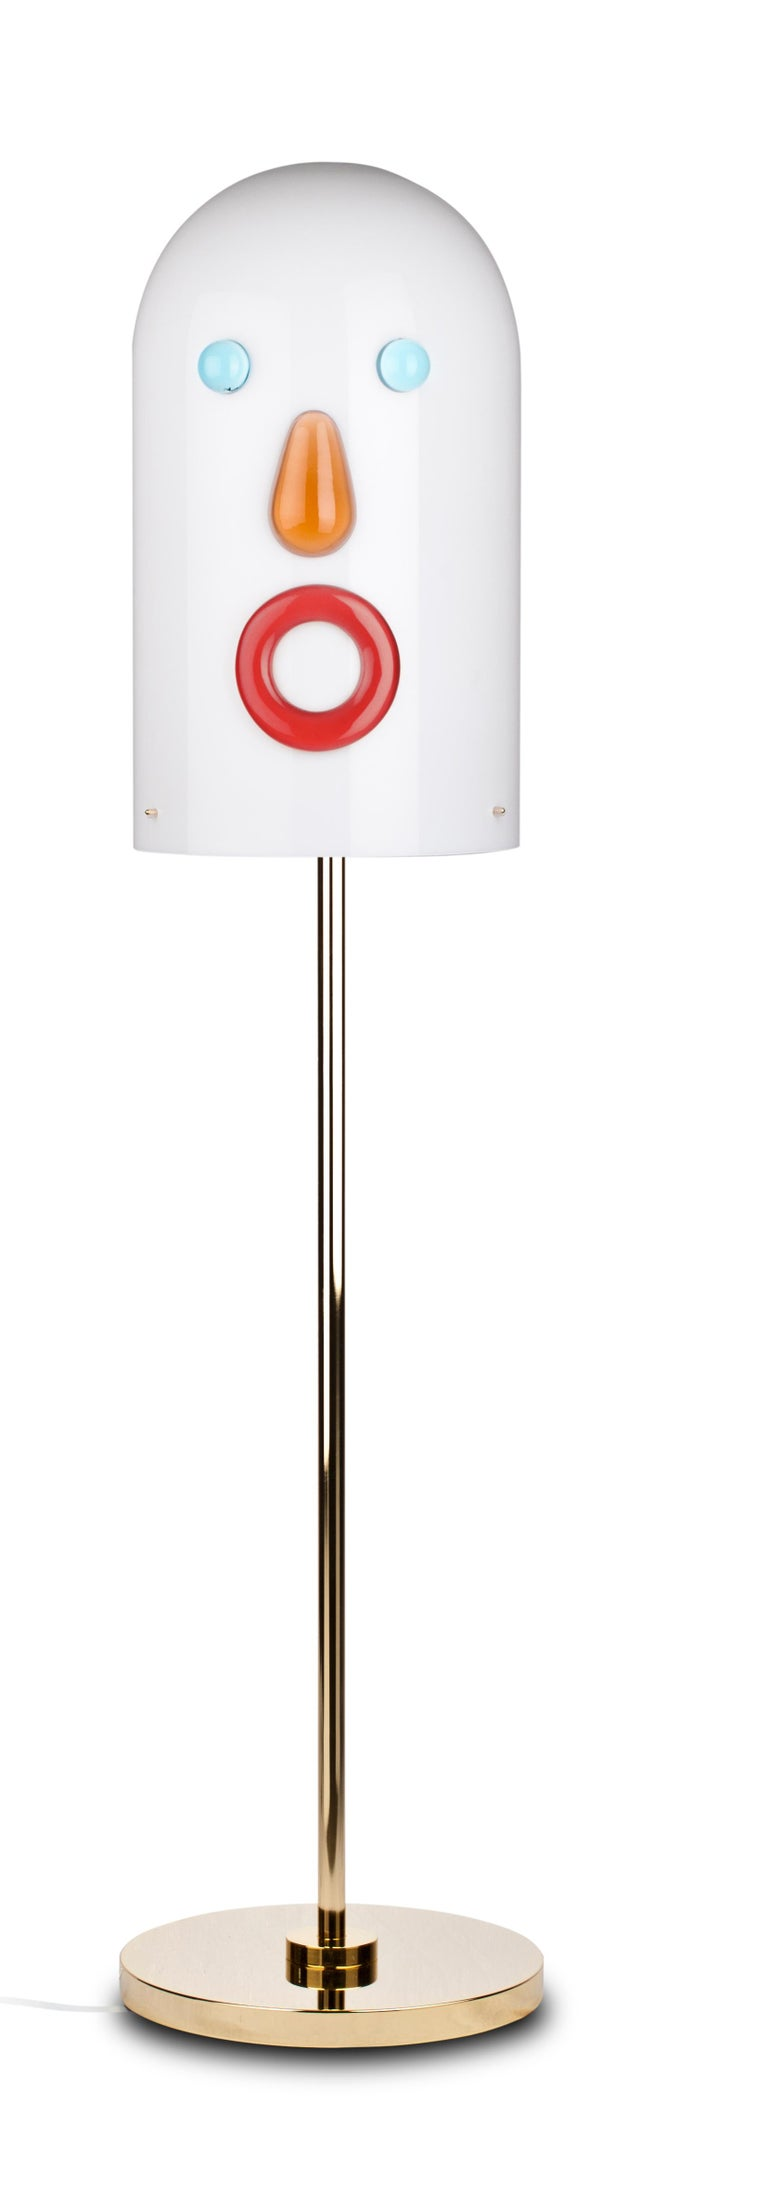 Mae West collection of floor lamps, designed by Studio Job and manufactured by Venini, featuring 5 different shaped lamps. Limited edition of 29 + 9 art pieces (per version). Indoor use only.